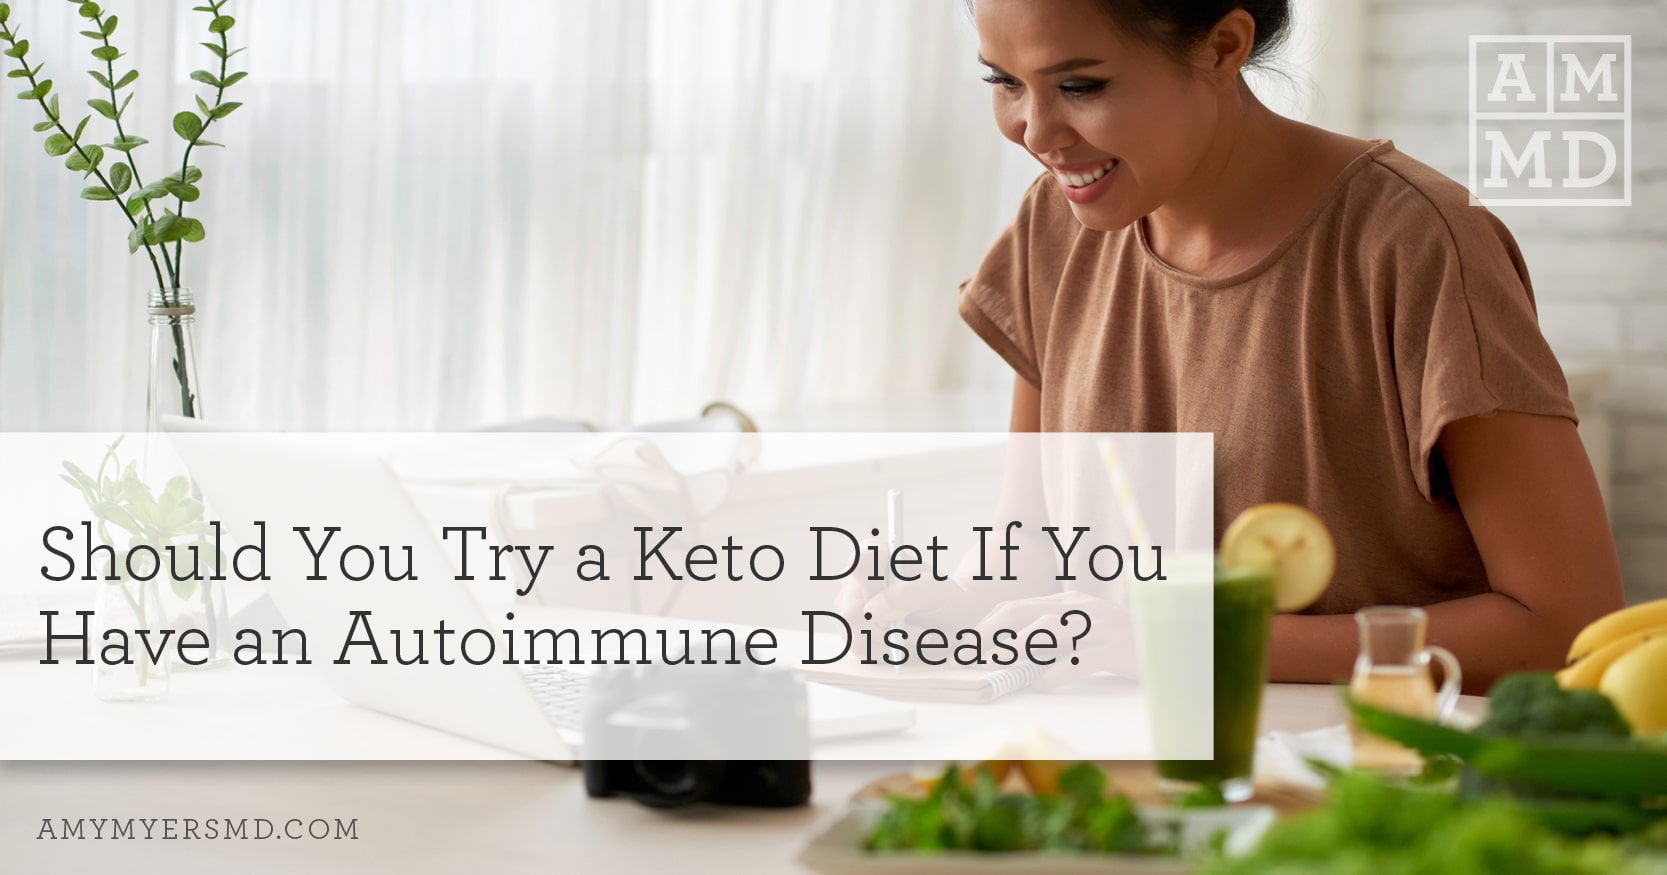 Should You Try a Keto Diet if You Have an Autoimmune Disease? - Featured Image - Amy Myers MD